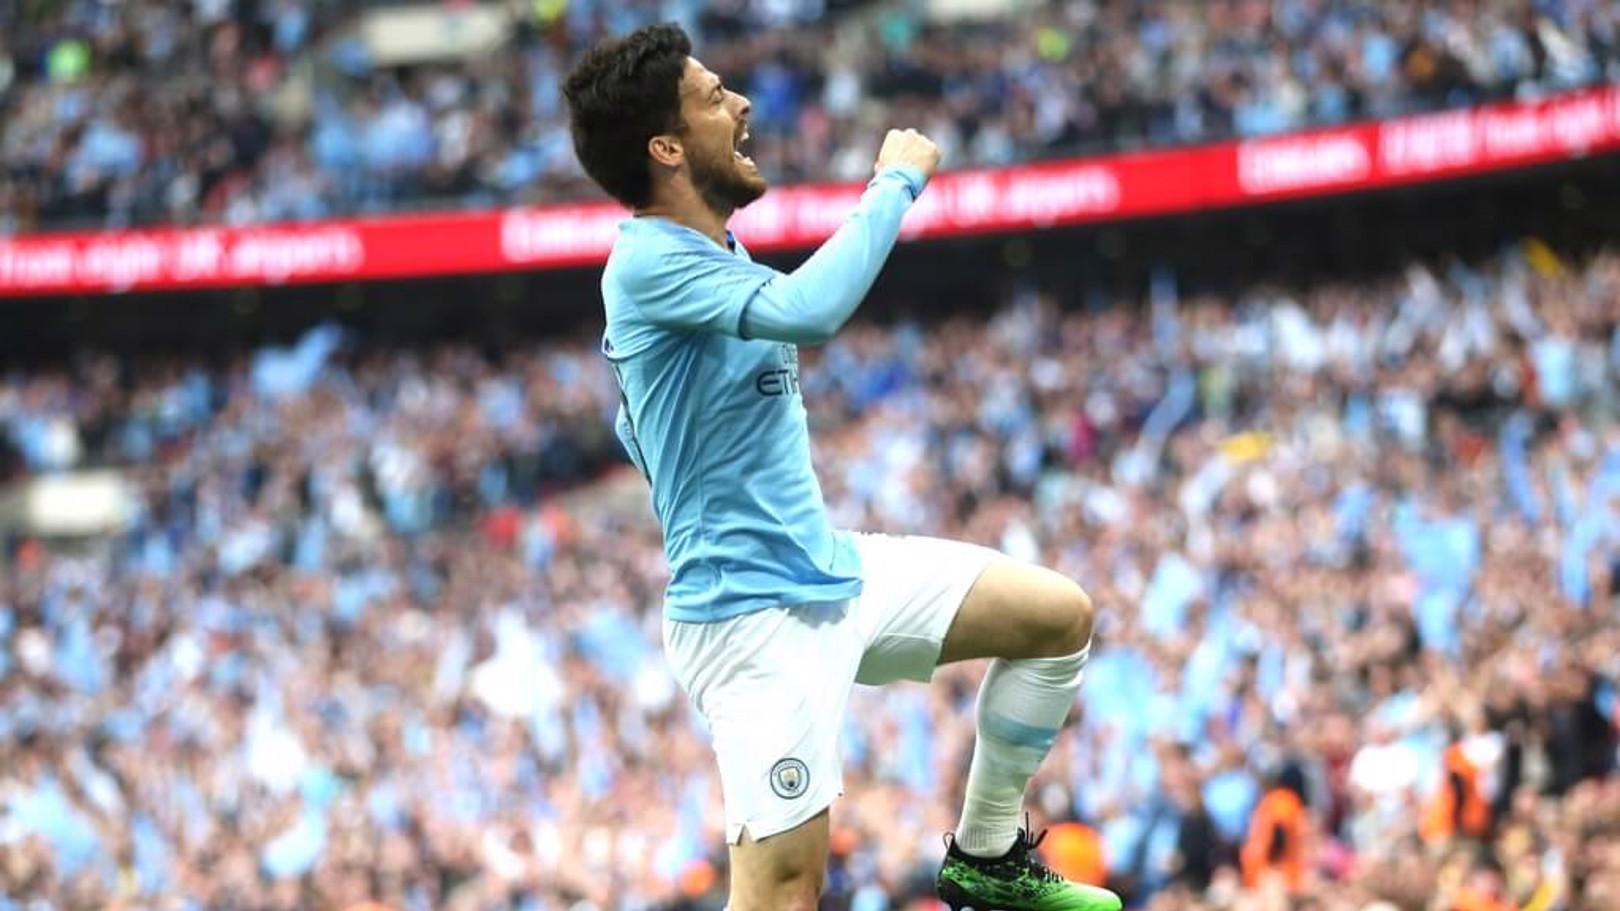 SILVA SPRINGS: A flying celebration from the Spaniard